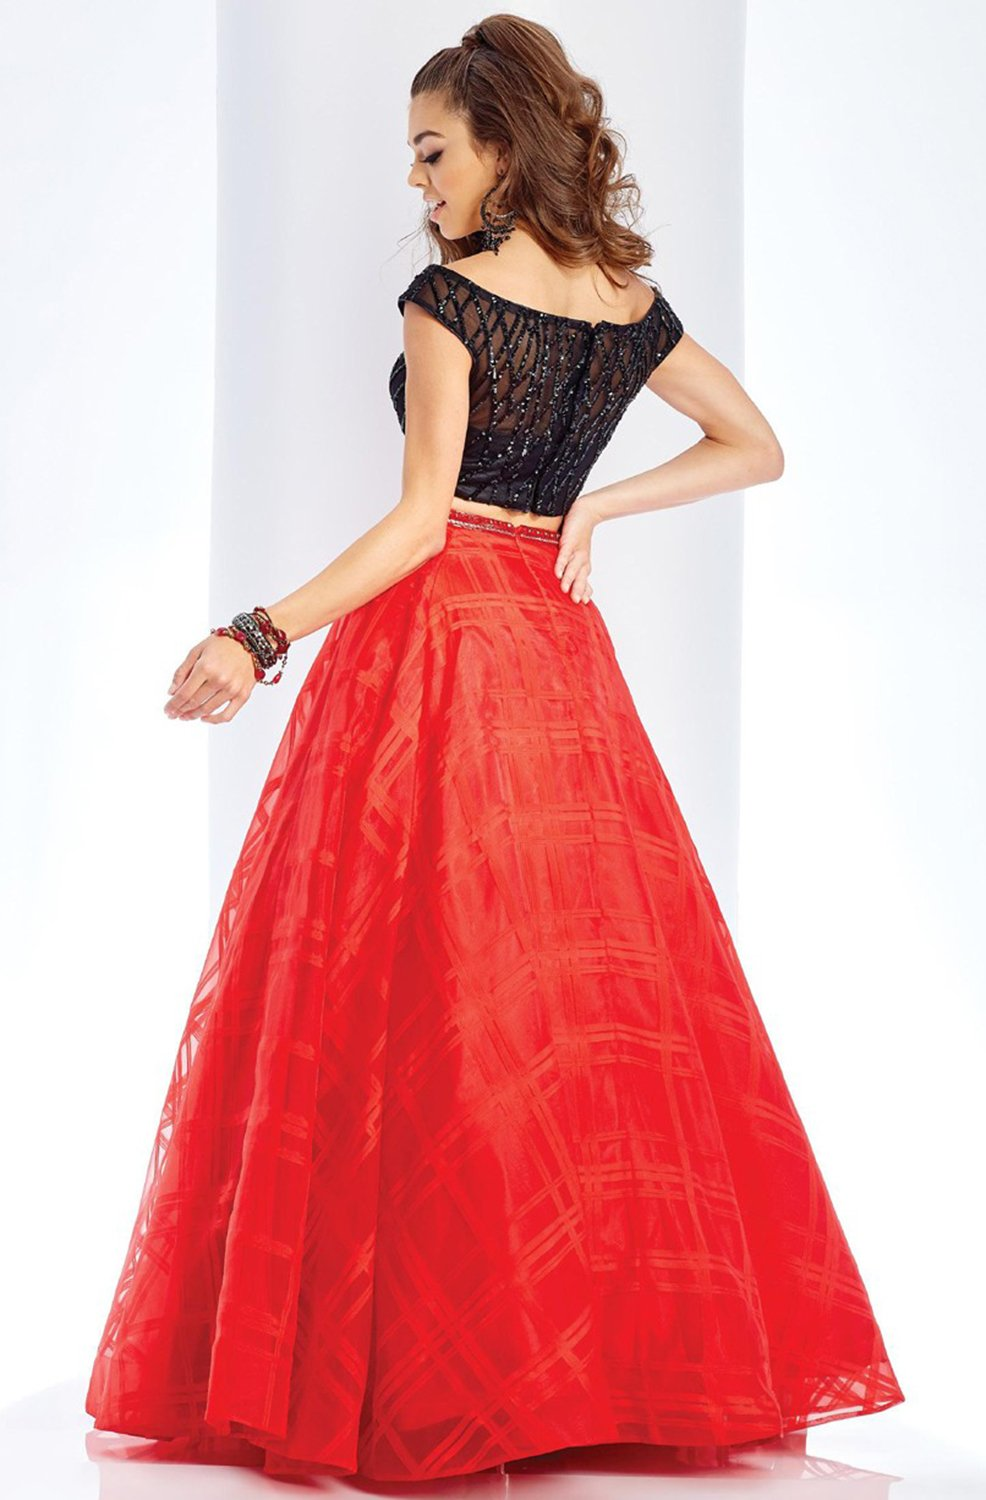 Clarisse - Two Piece Beaded Bodice Plaid Organza Dress 3580SC